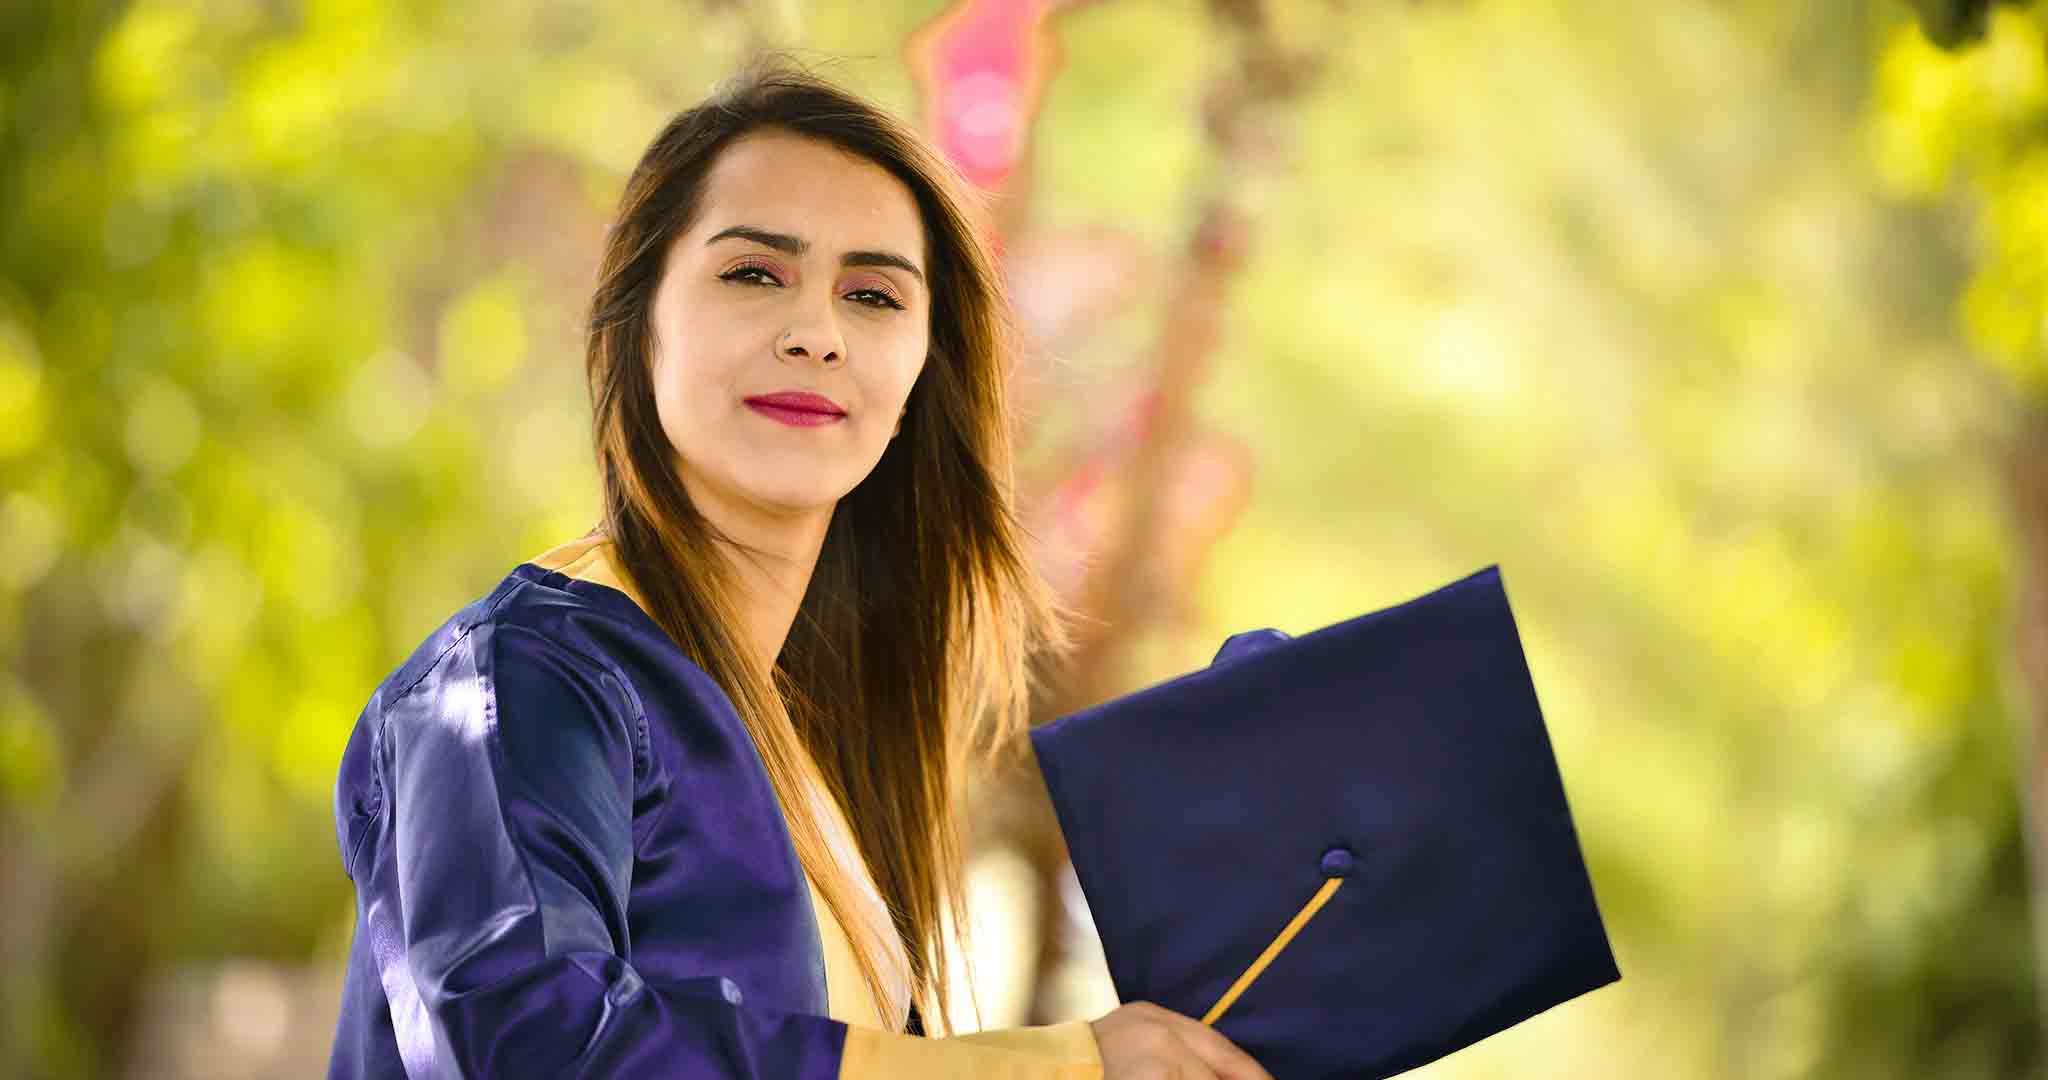 academic degree accomplishment adult college students stock photography 002